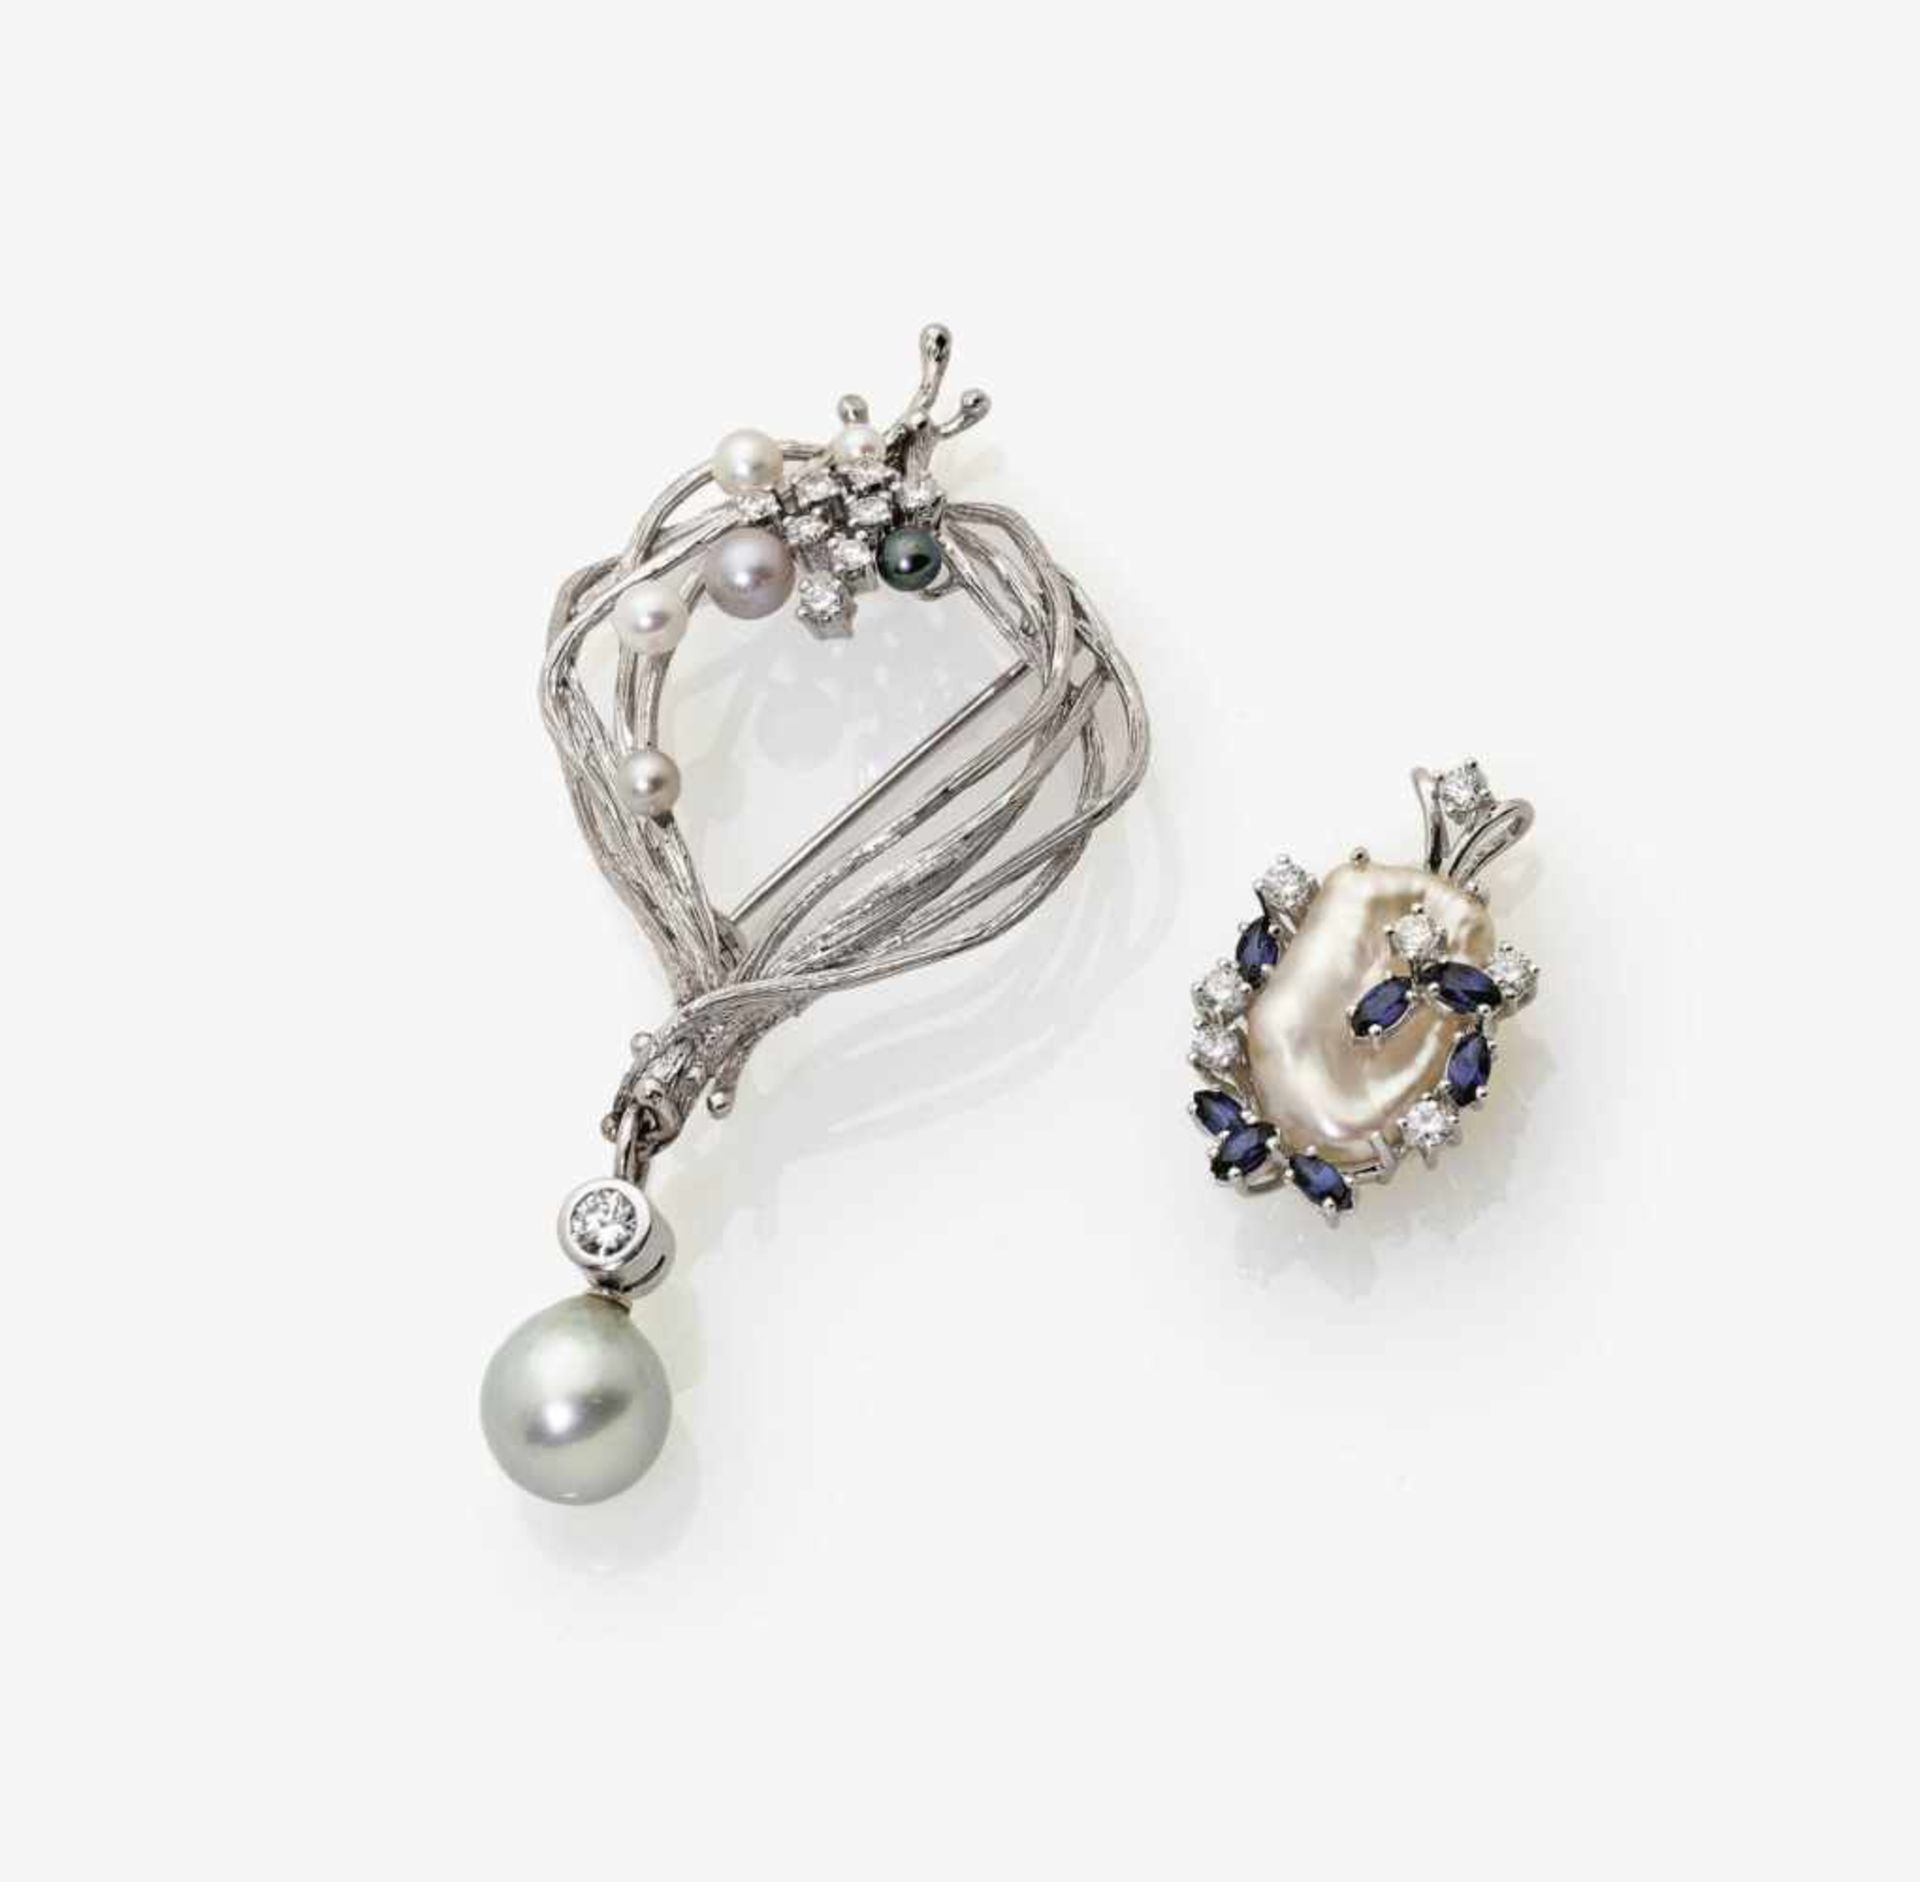 Los 1051 - A Brooch and Pendant set with Cultured Pearls, Diamonds and Sapphires